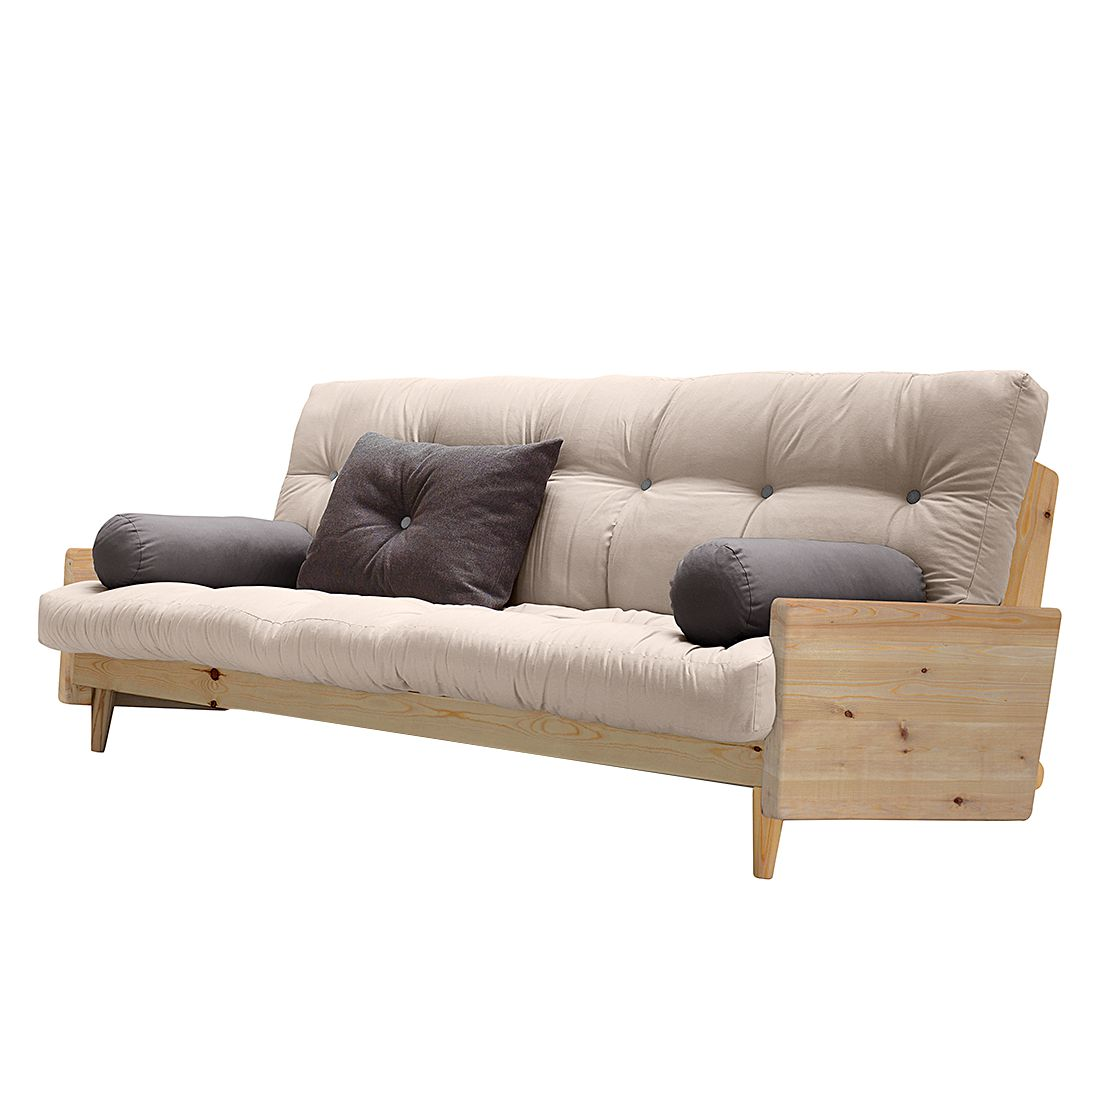 slaapbank buckle up futon grijsbordeaux karup in de aanbieding kopen. Black Bedroom Furniture Sets. Home Design Ideas